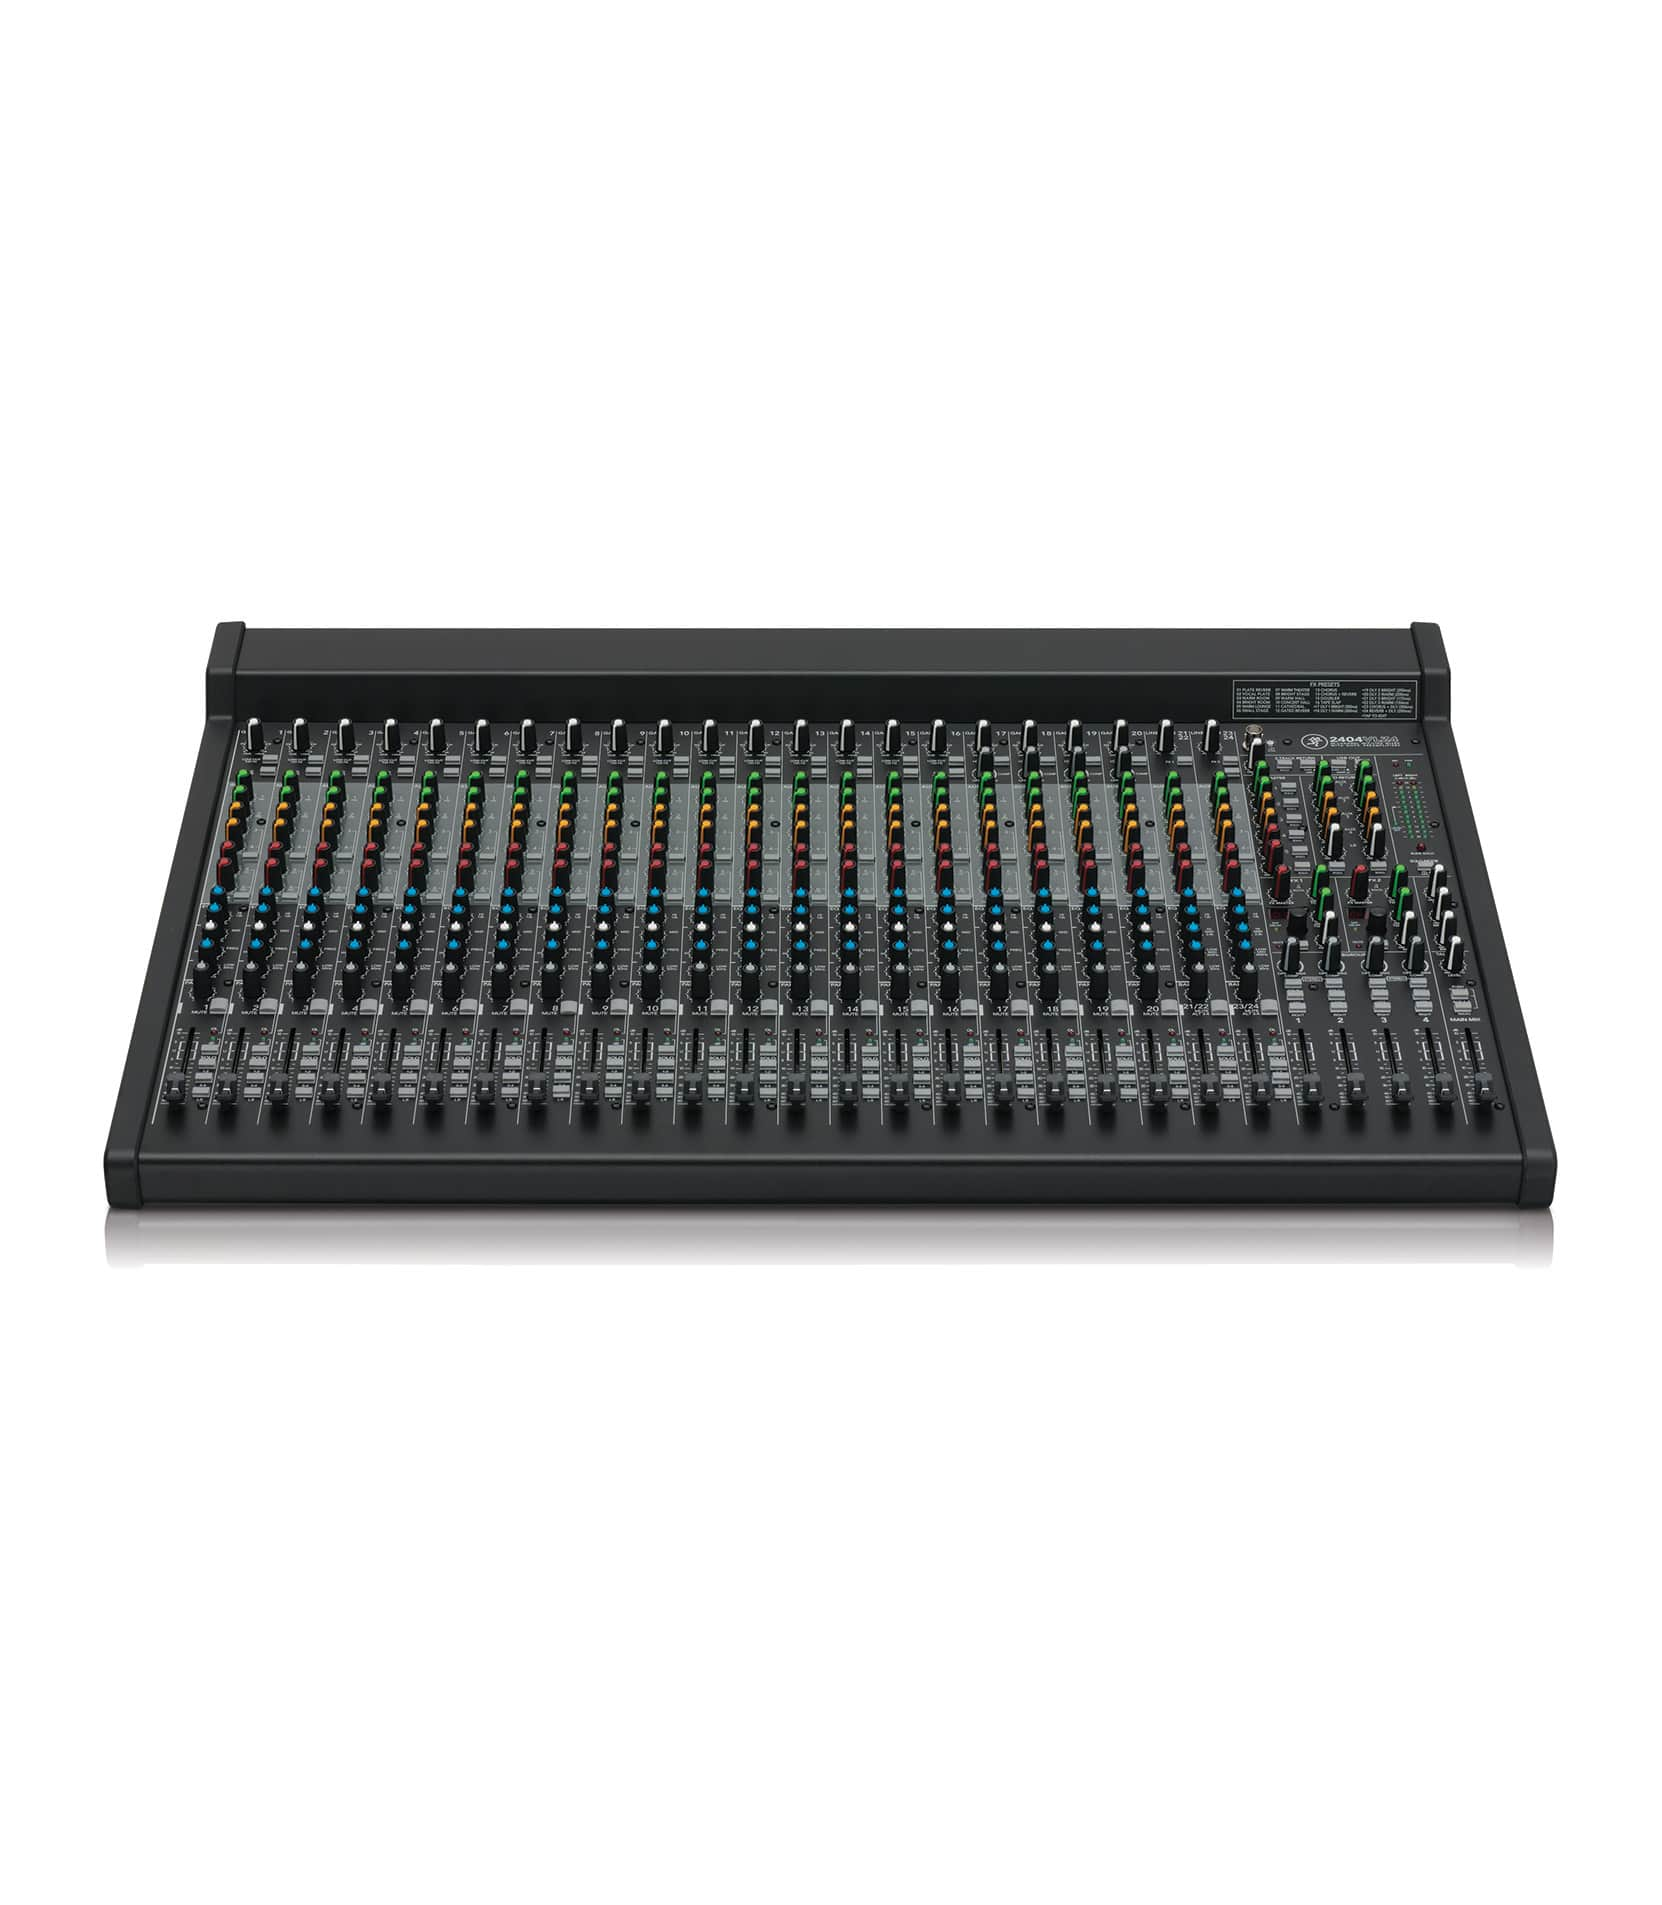 2404VLZ4 24 channel 4 bus FX Mixer with USB - Buy Online